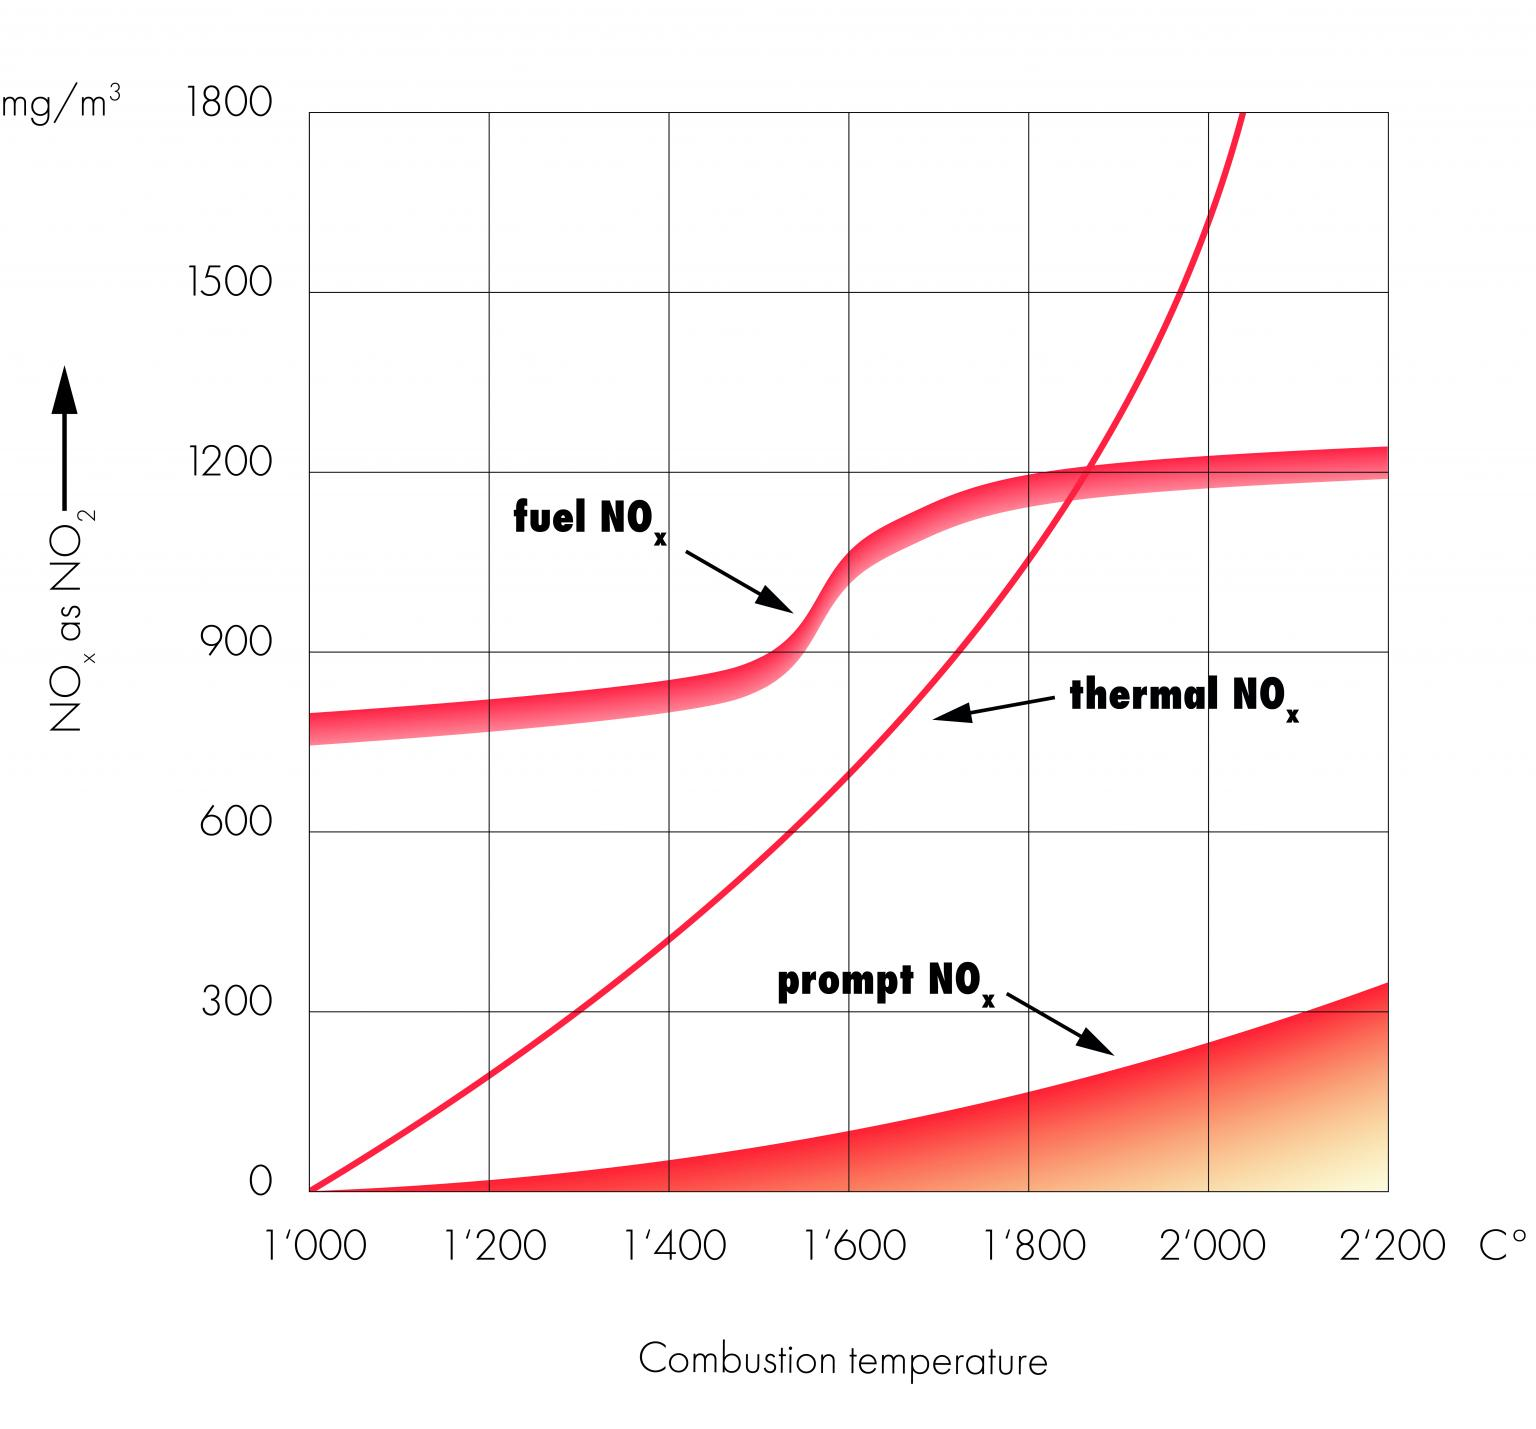 Influence of temperature on NOx formation (Rents, Nunge, Laforsch, Holtmann,1999)